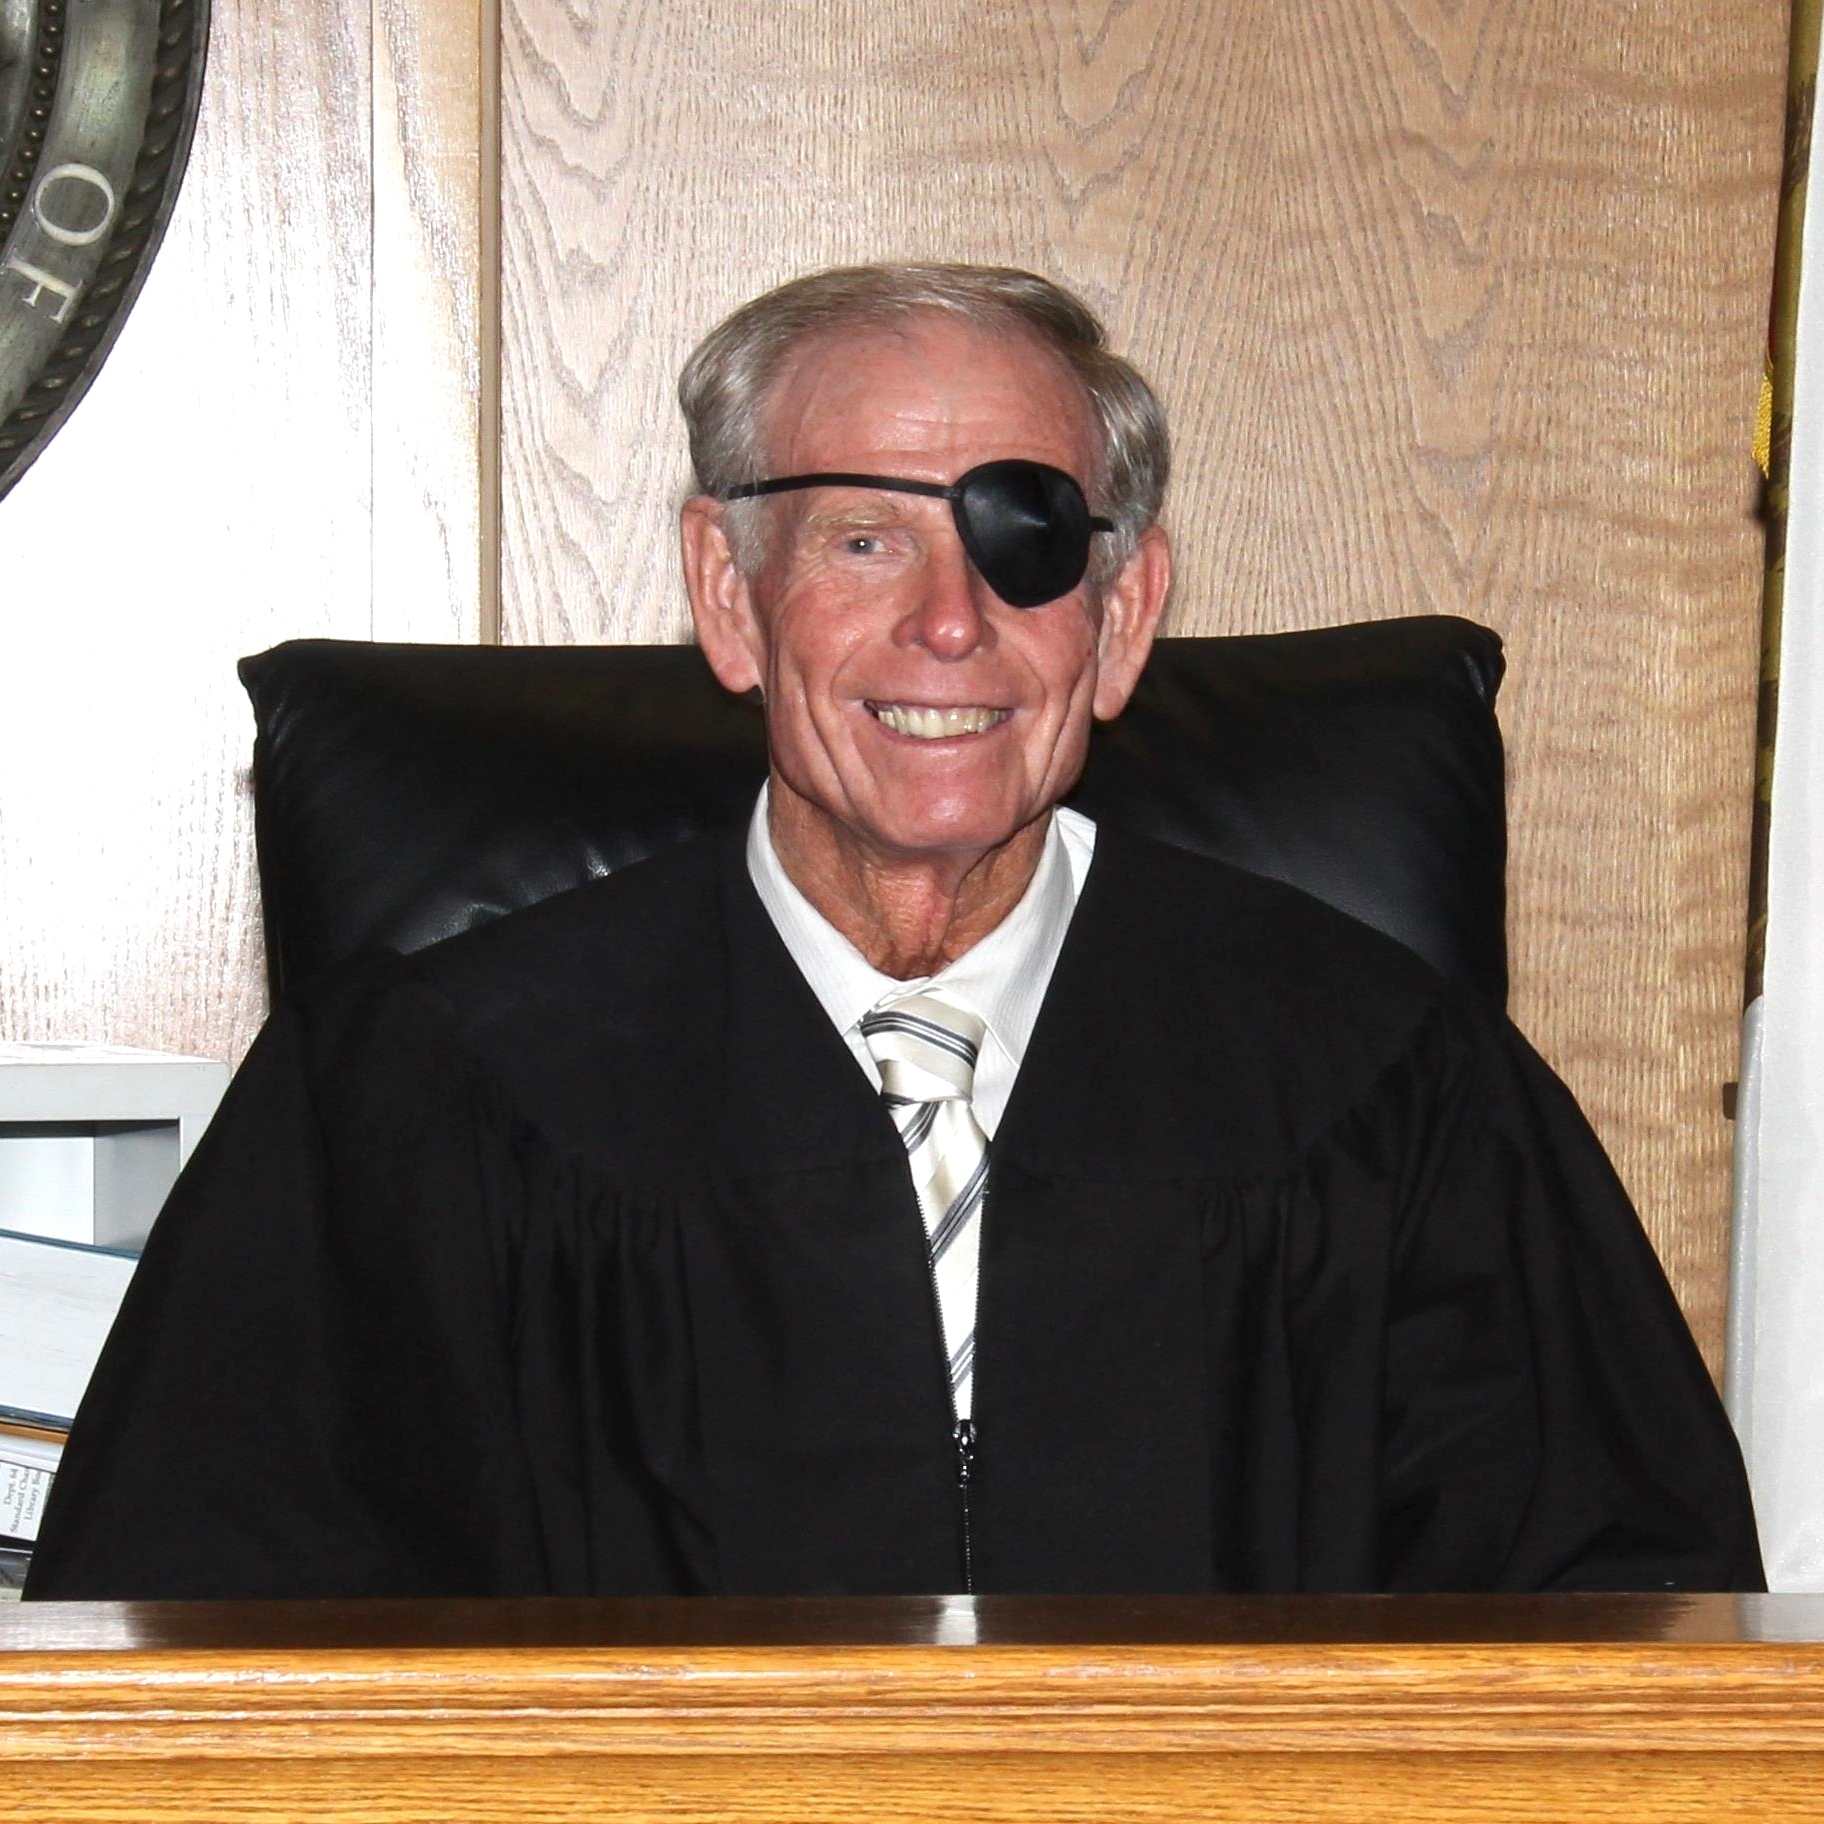 Judge Stephen Manley